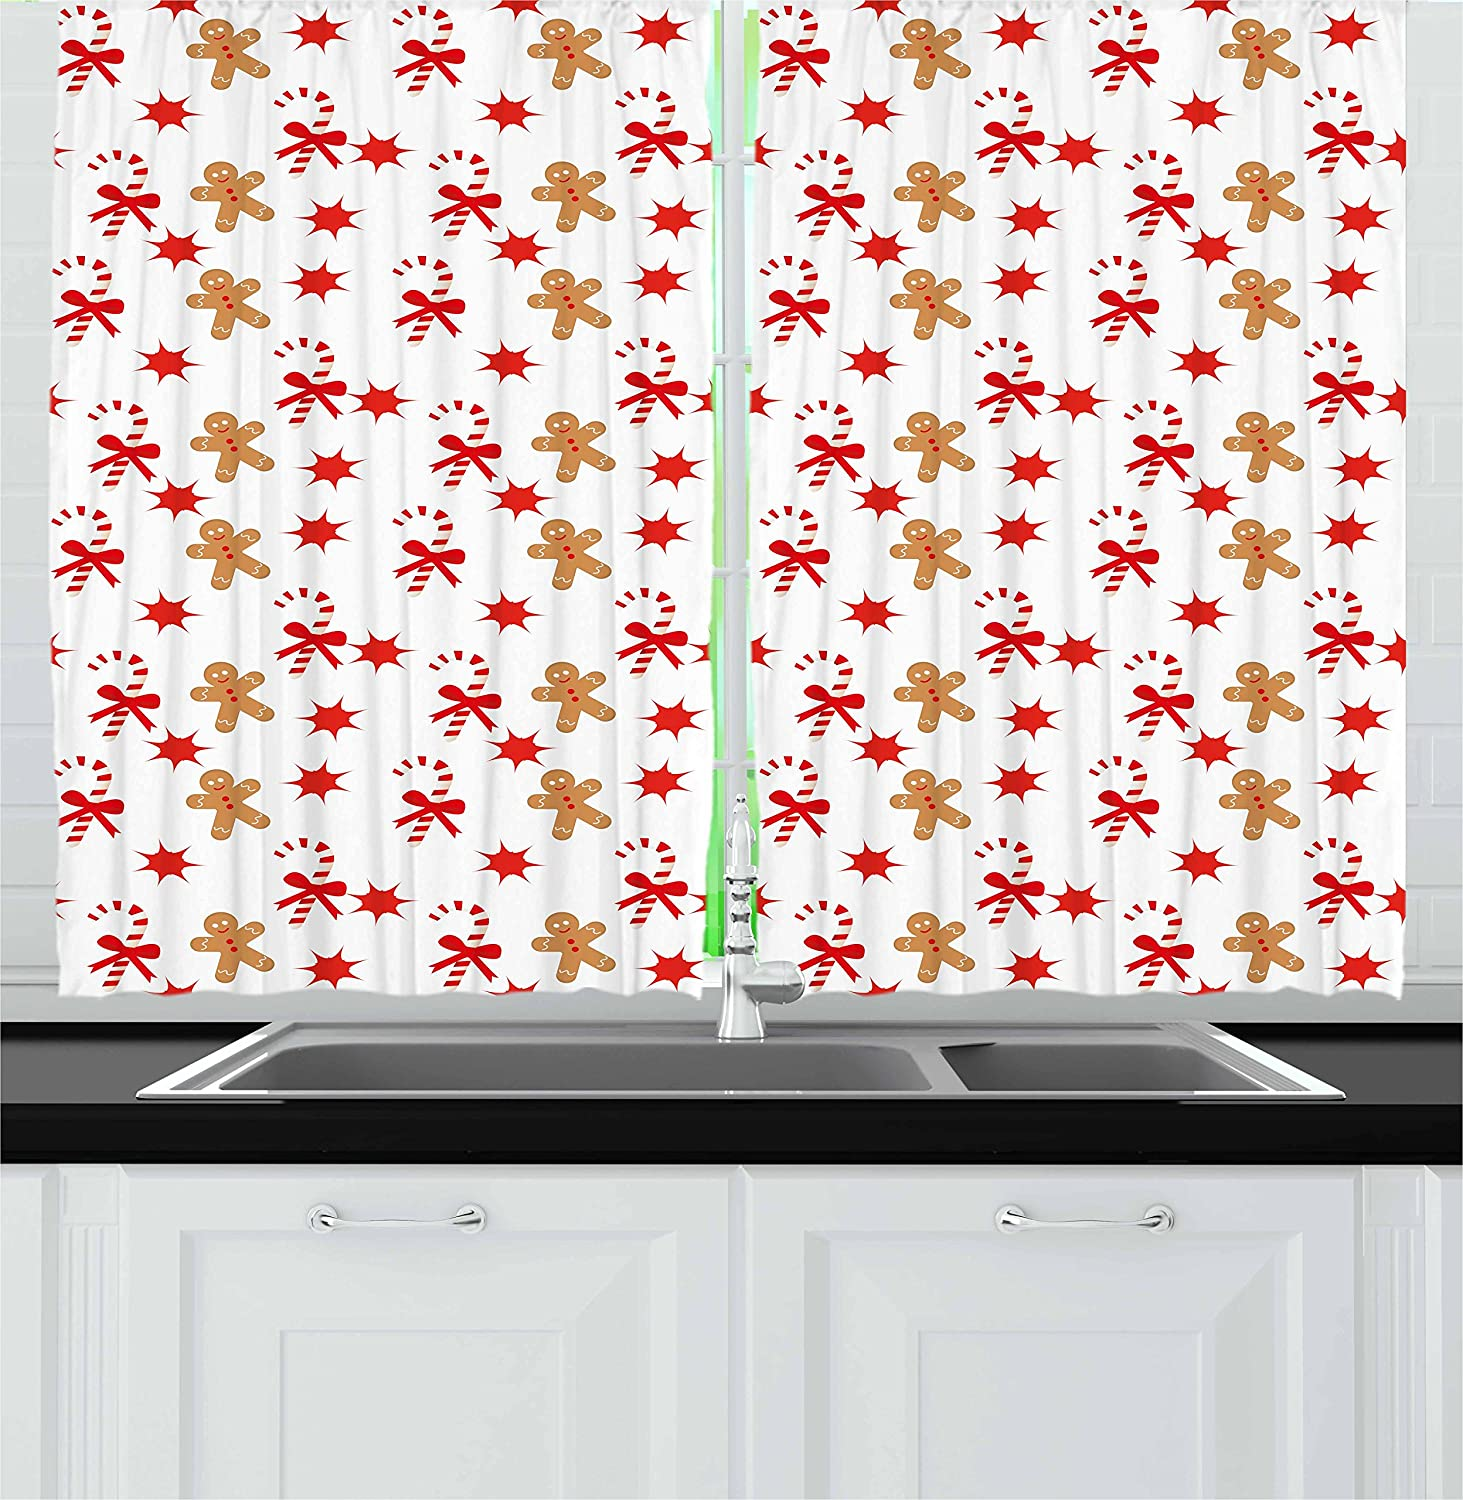 Ambesonne Gingerbread Man Kitchen Curtains, Candy Cane with Bowties Red Star Figures Gingerbread Man Pattern, Window Drapes 2 Panel Set for Kitchen Cafe, 55 W X 39 L Inches, Sand Brown Orange